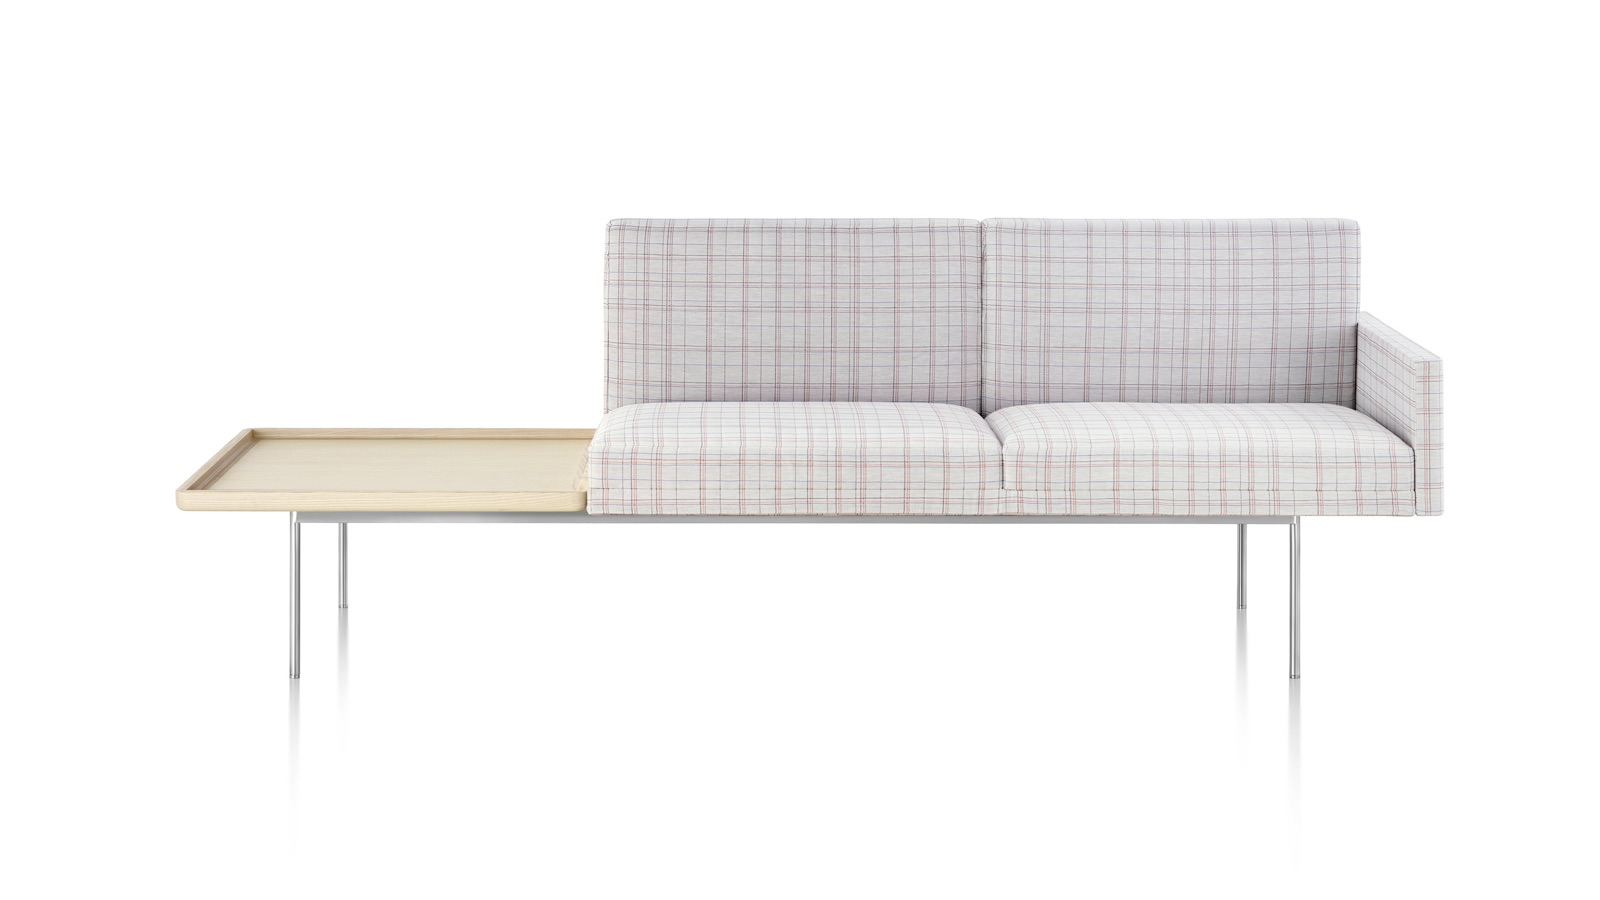 White sweep image of a Tuxedo Component Lounge settee with connected table.